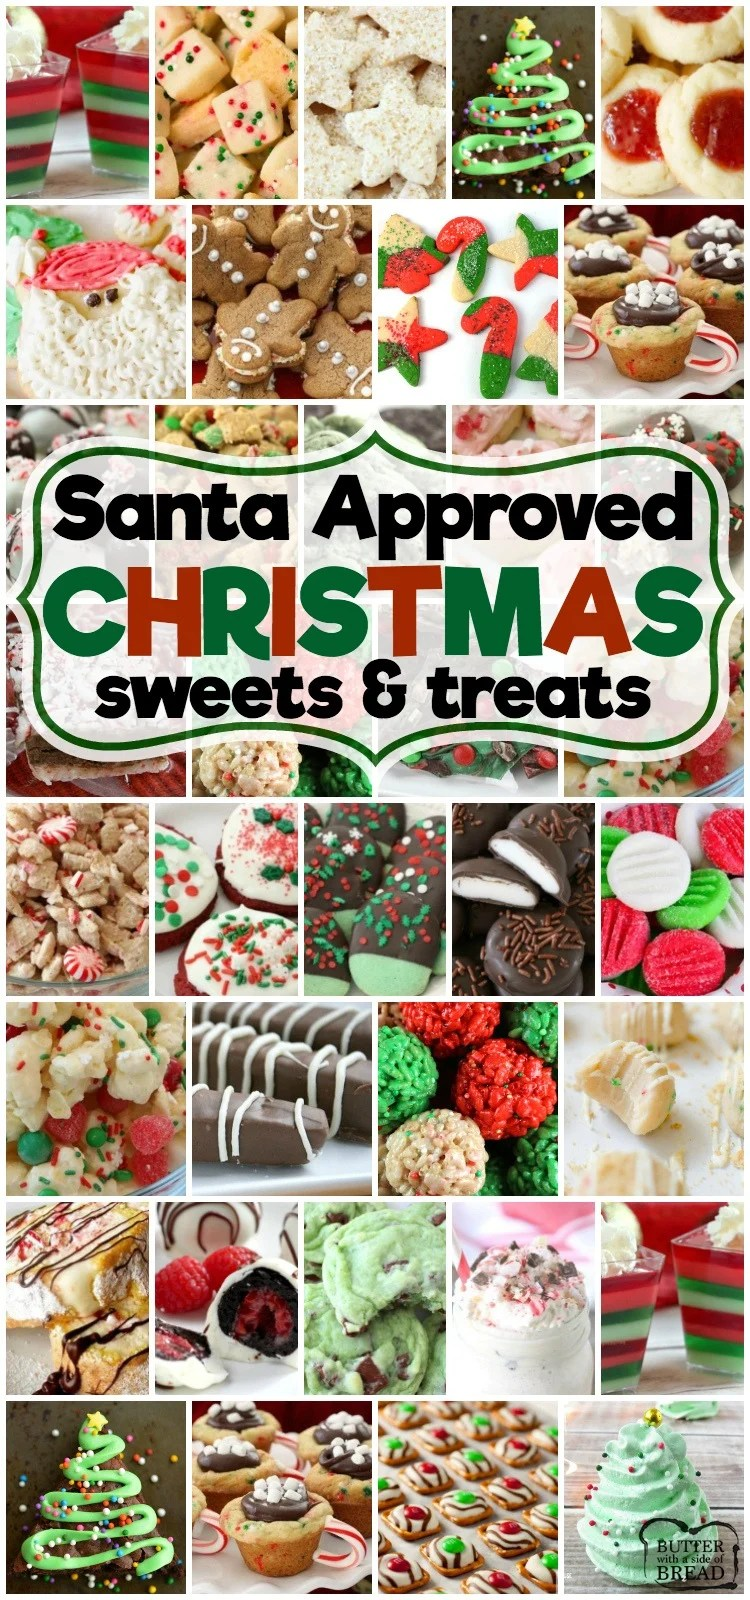 Best collection of easy Christmas dessert recipes ever- they're even Santa approved! Our Christmas desserts are perfect for holiday parties, cookie exchanges and neighbor goodie plates!  #christmas #desserts #treats #candy #cookies #holiday #parties #Santa #recipe from BUTTER WITH A SIDE OF BREAD